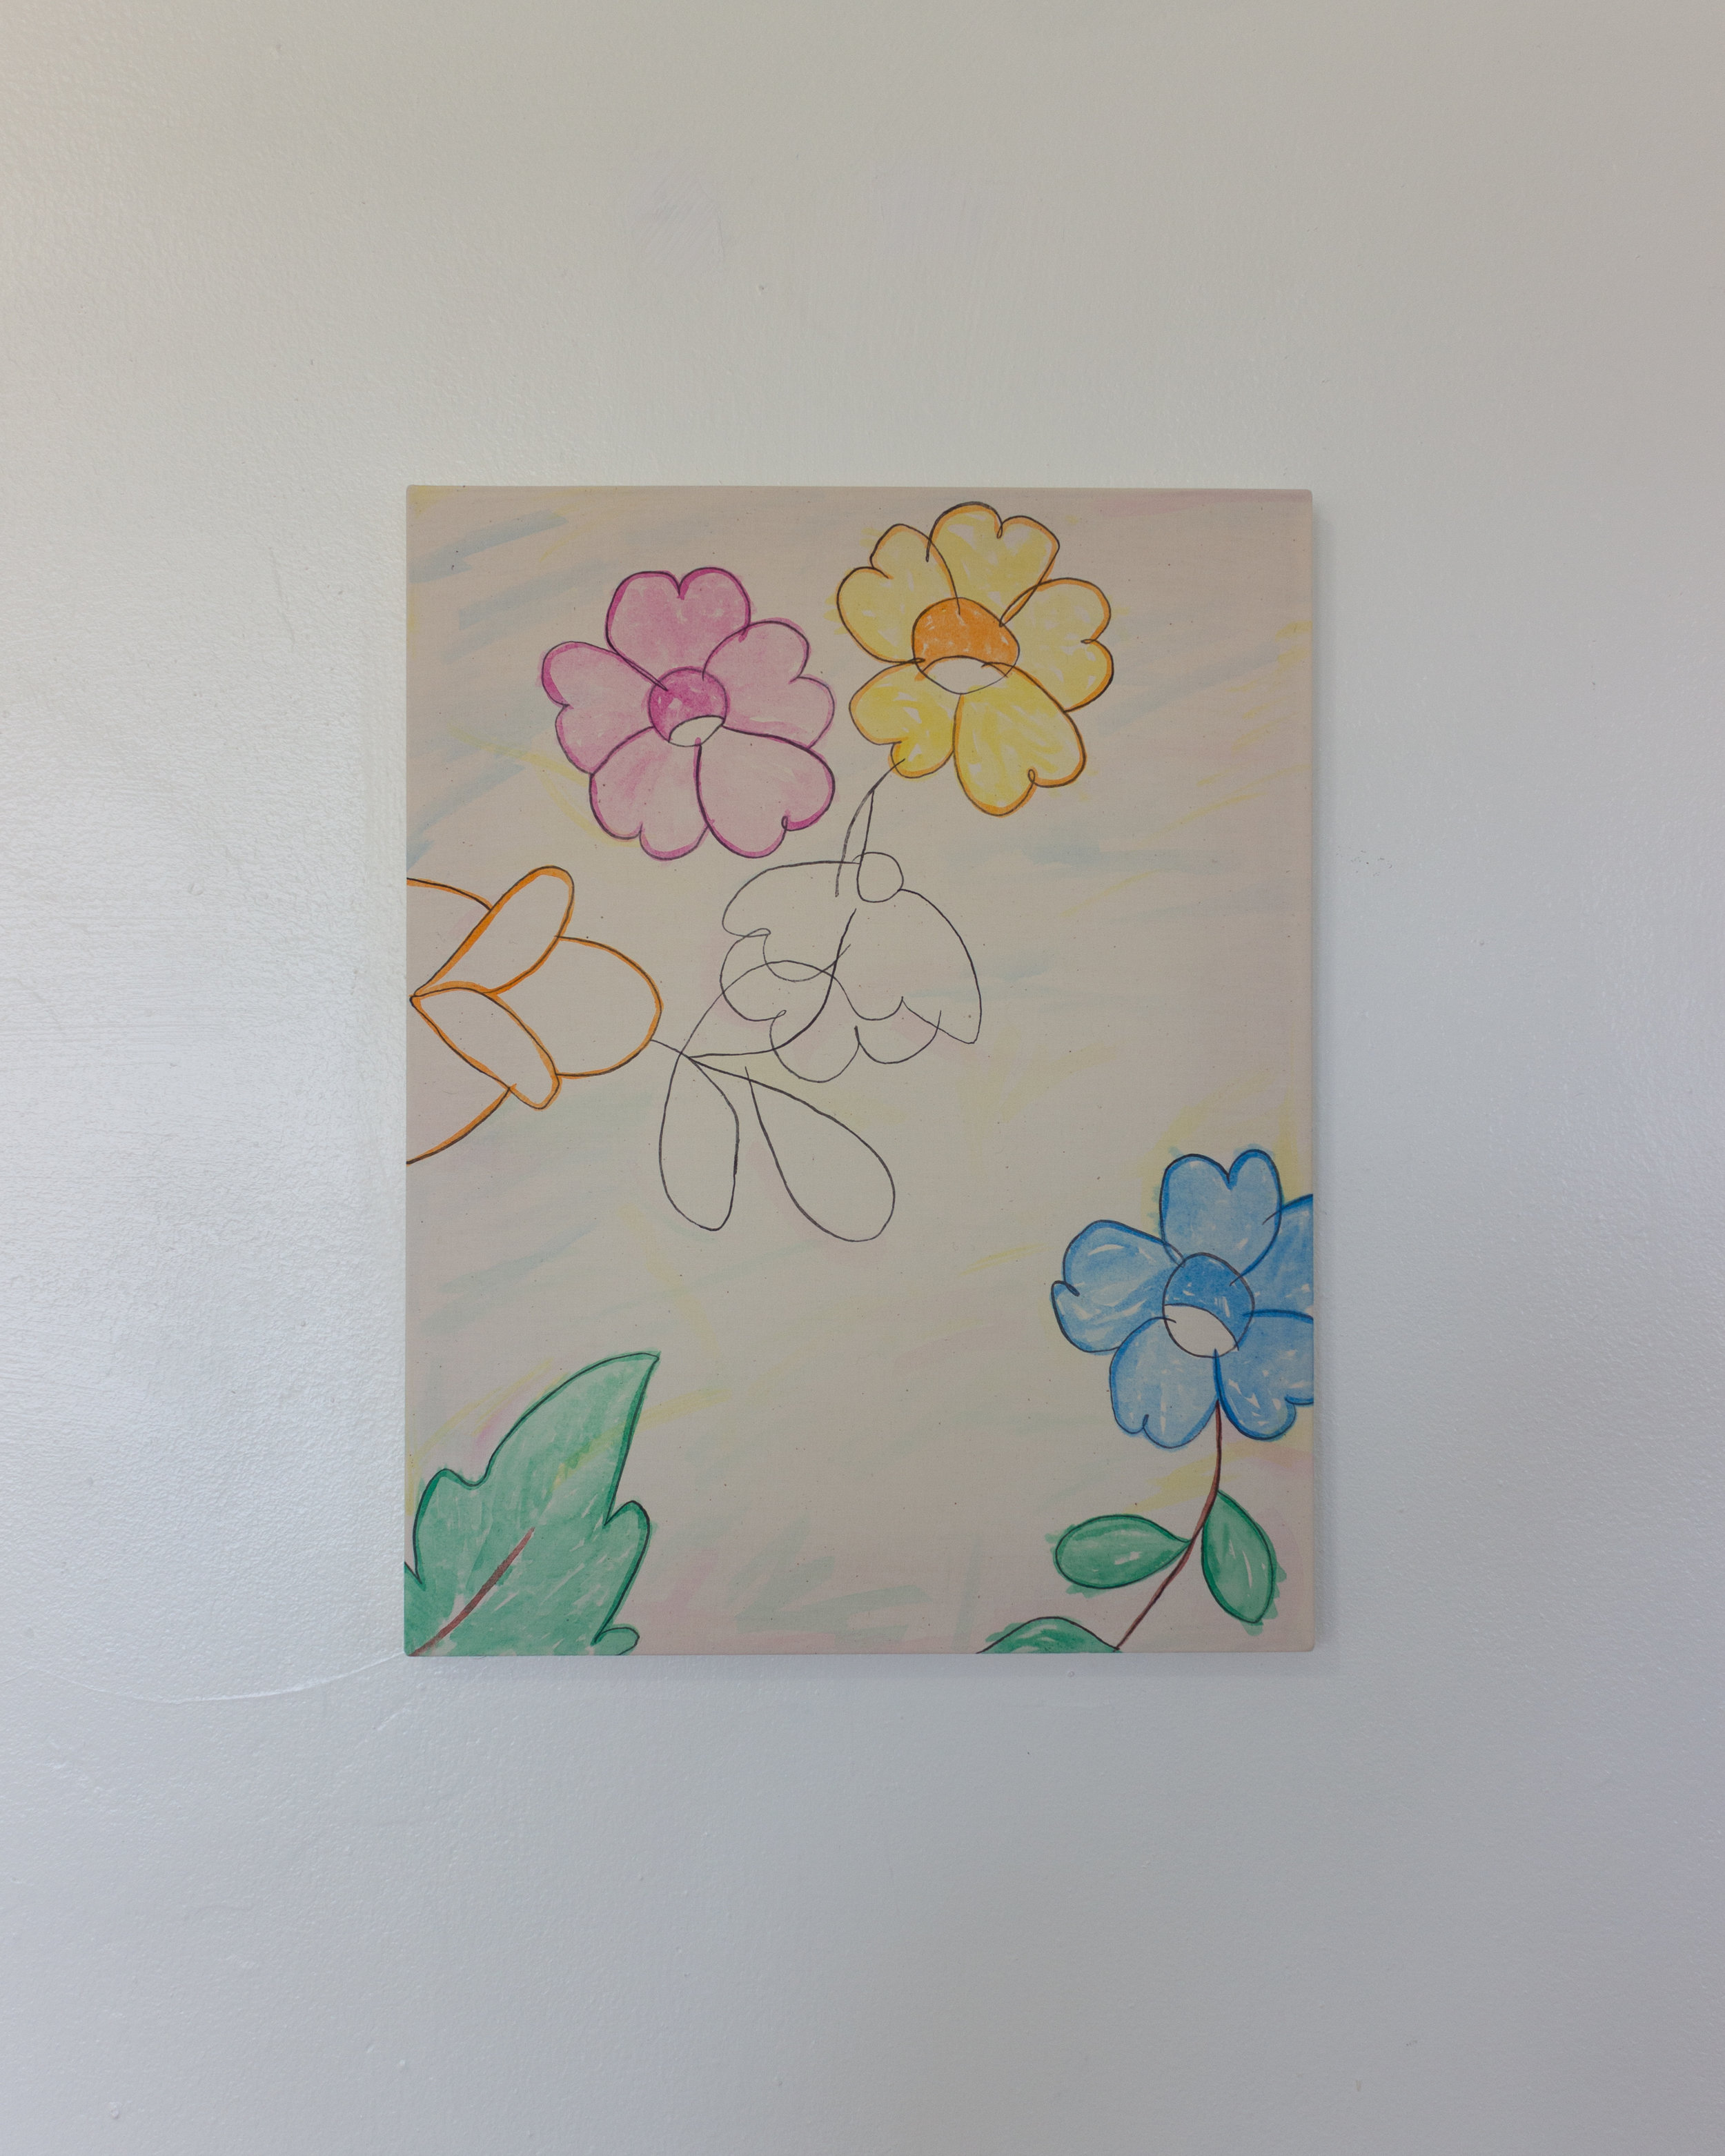 Alejandro Jiménez-Flores,  florencio  borrows the flowers my mom taught me how to draw as a child., 2019, Soft-pastels and acrylic gouache on muslin 14 x 18 in.